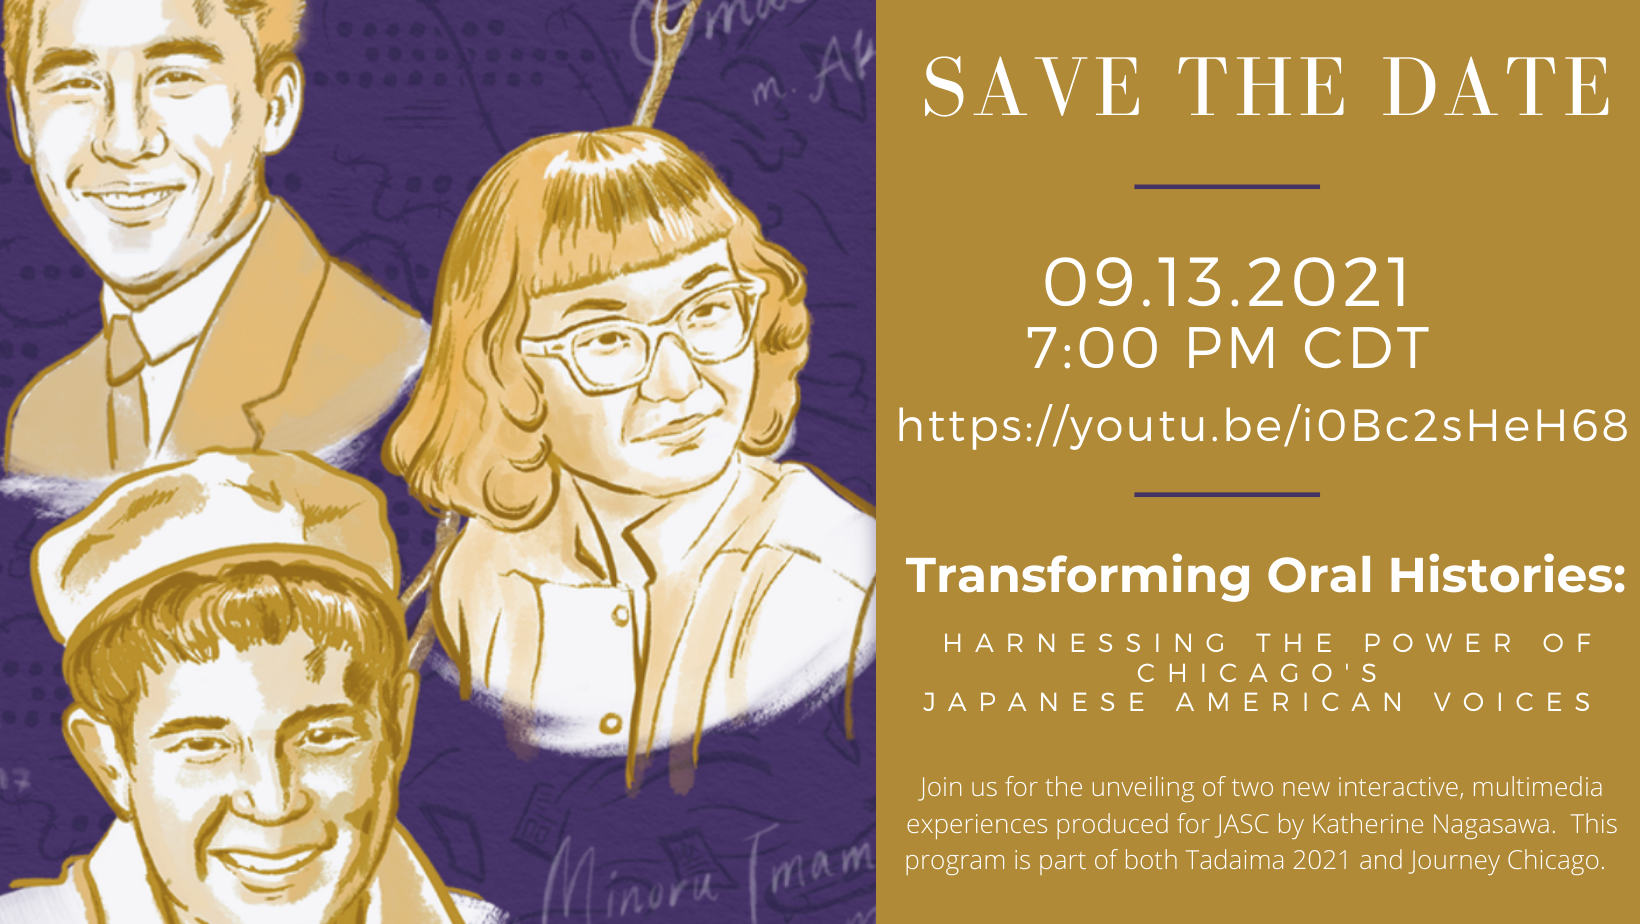 """Left side of graphic has a purple background with mustard yellow portraits of three young adults, one female and two male. Right side has a mustard yellow background with white lettering, text reads """"Save the date, 09.13.2921, 7:00 PM 7:00 PM CDT, https://youtu.be/i0Bc2sHeH68, Transforming Oral Histories: Harnessing the Power of Chicago's Japanese American Voices, Join us for the unveiling of two new interactive, multimedia experiences produced for JASC by Katherine Nagasawa. This program is part of both Tadaima 2021 and Journey Chicago."""""""